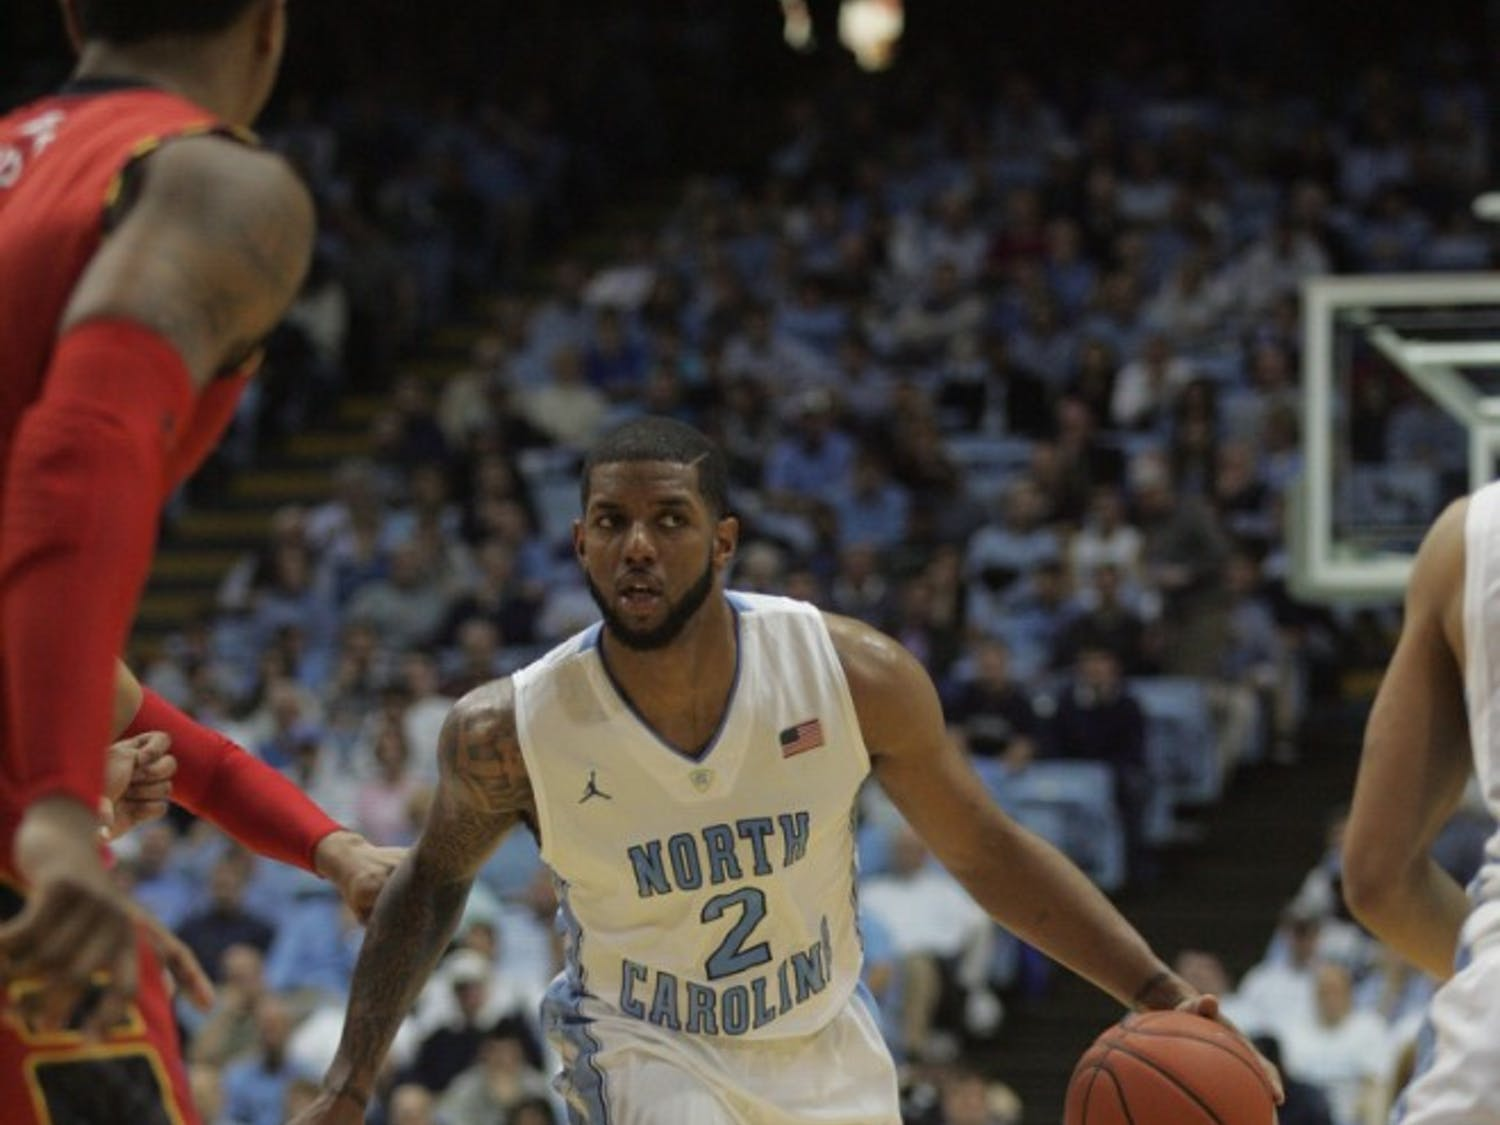 UNC defeated Maryland 75-63 in their last ACC meeting in Chapel hill, N.C.